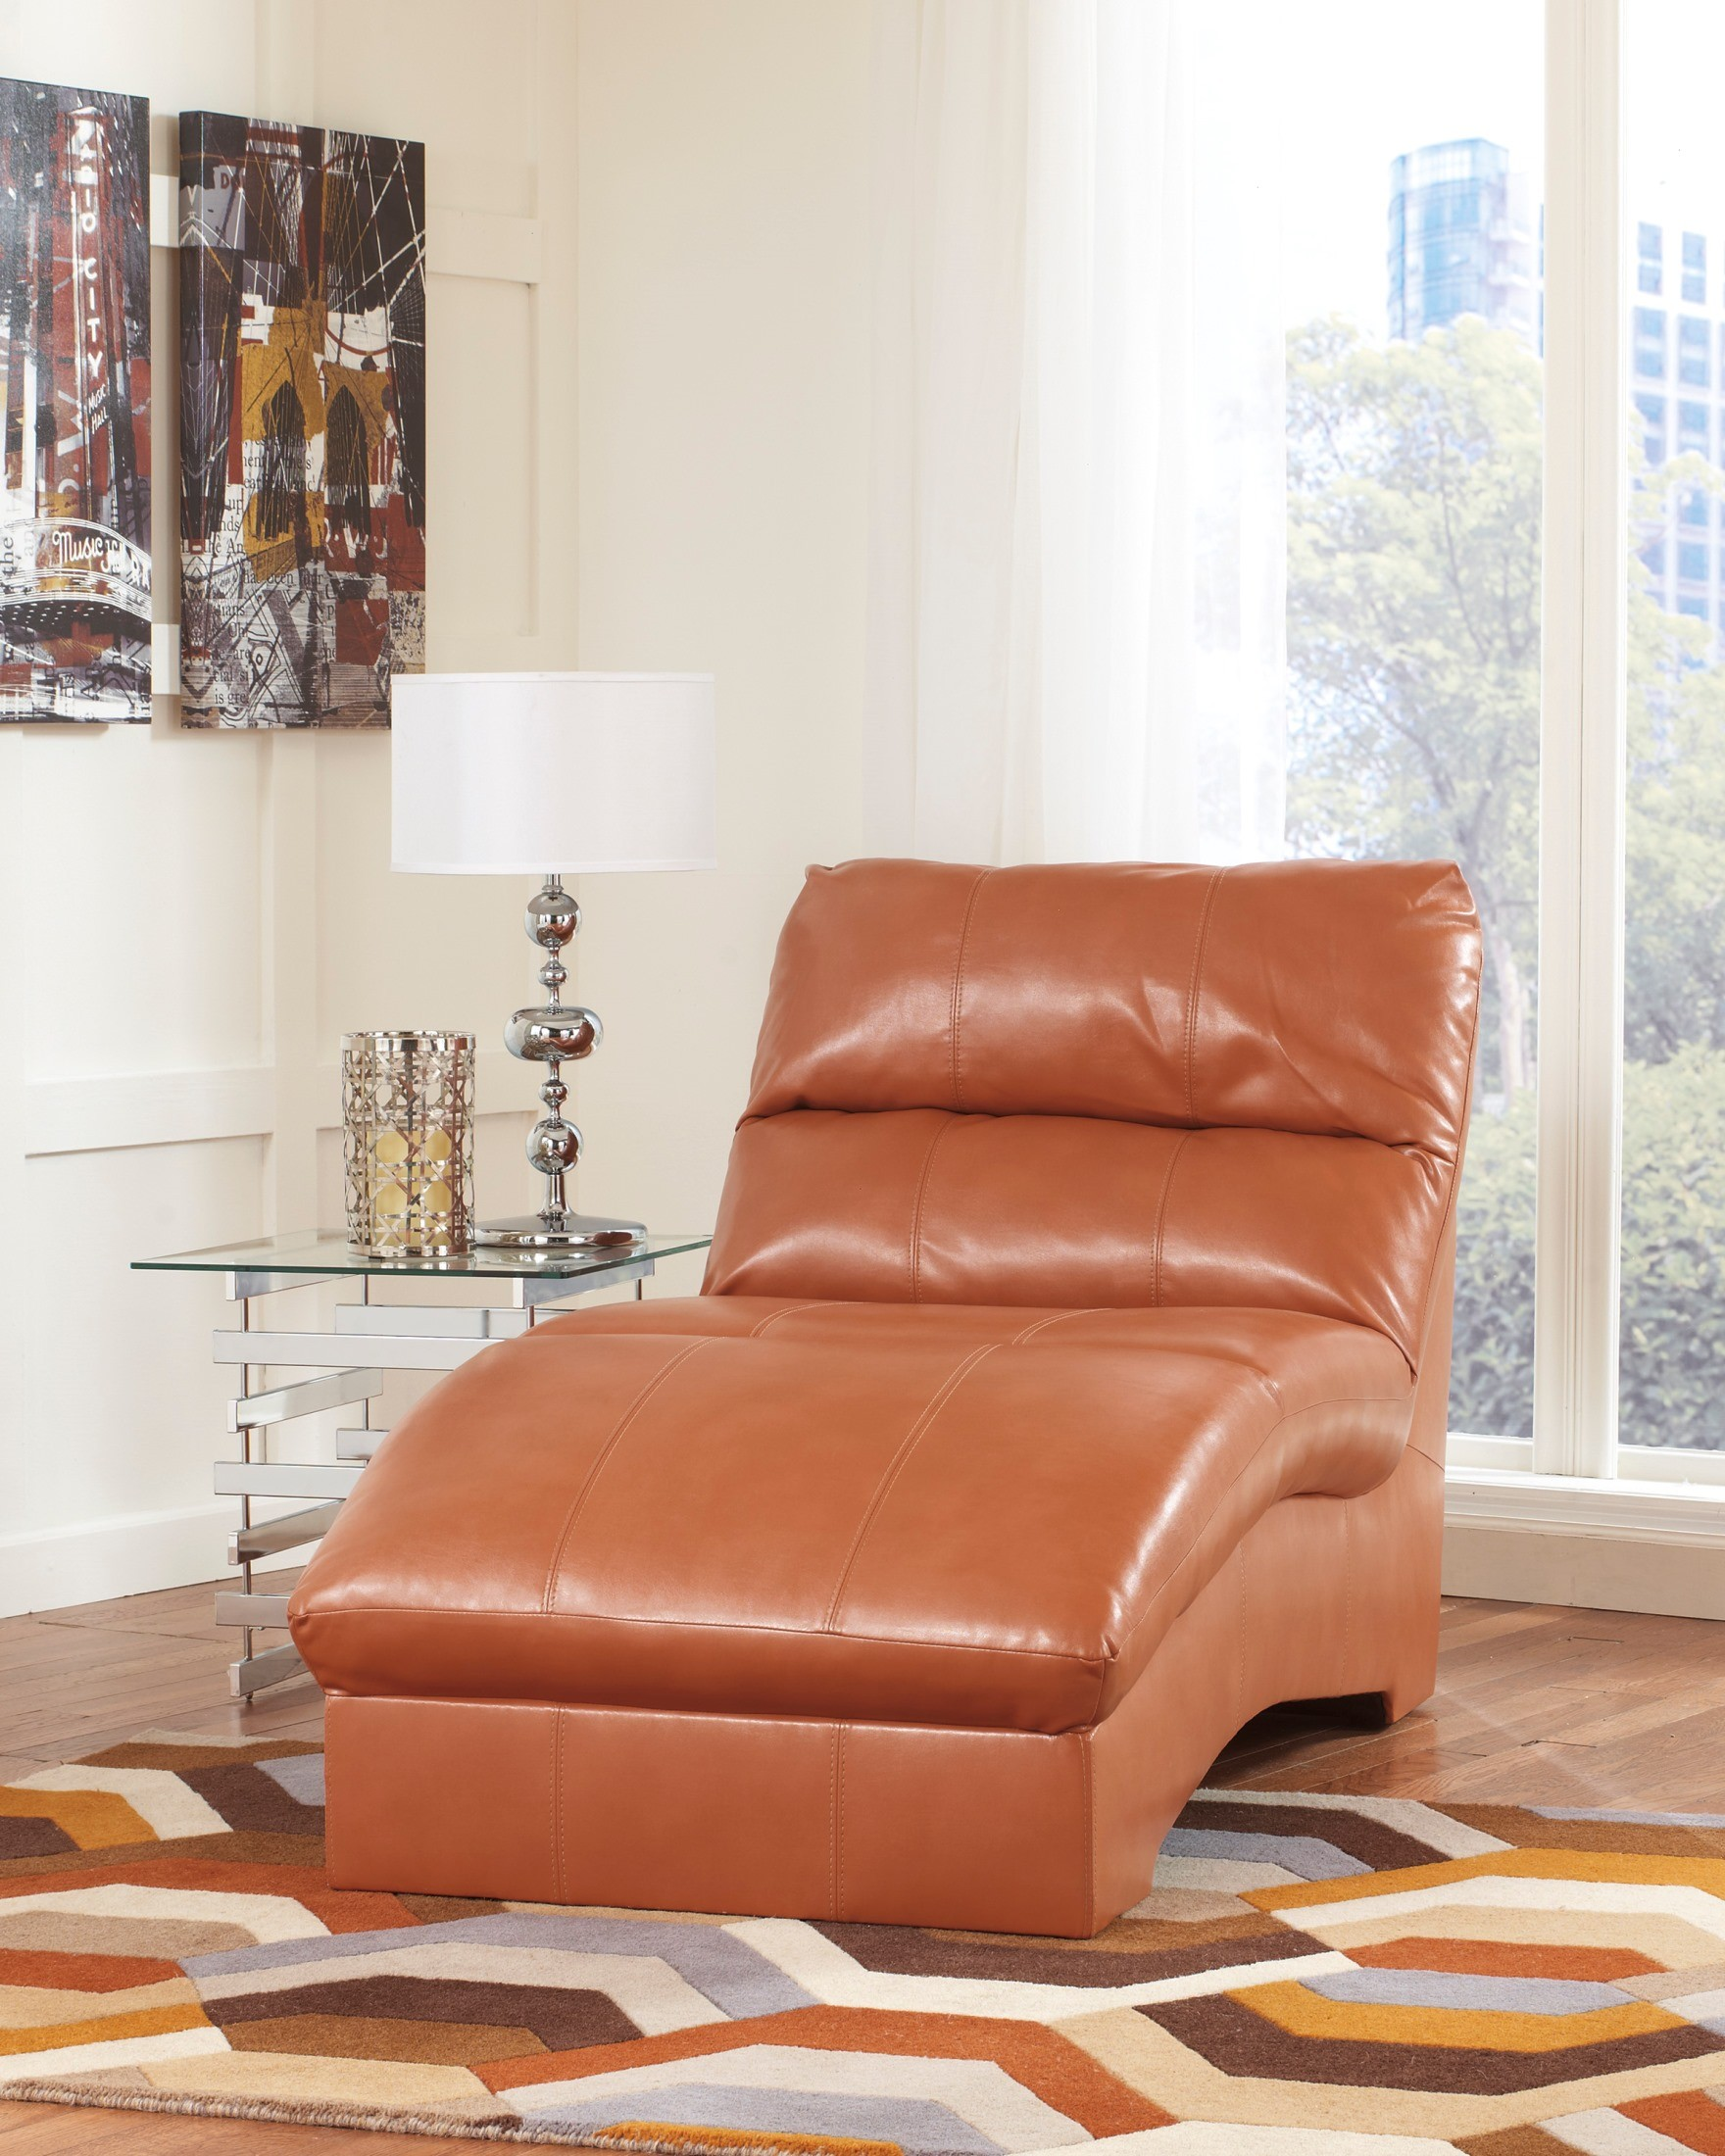 Paulie durablend orange chaise from ashley 2700215 for Ashley durablend chaise